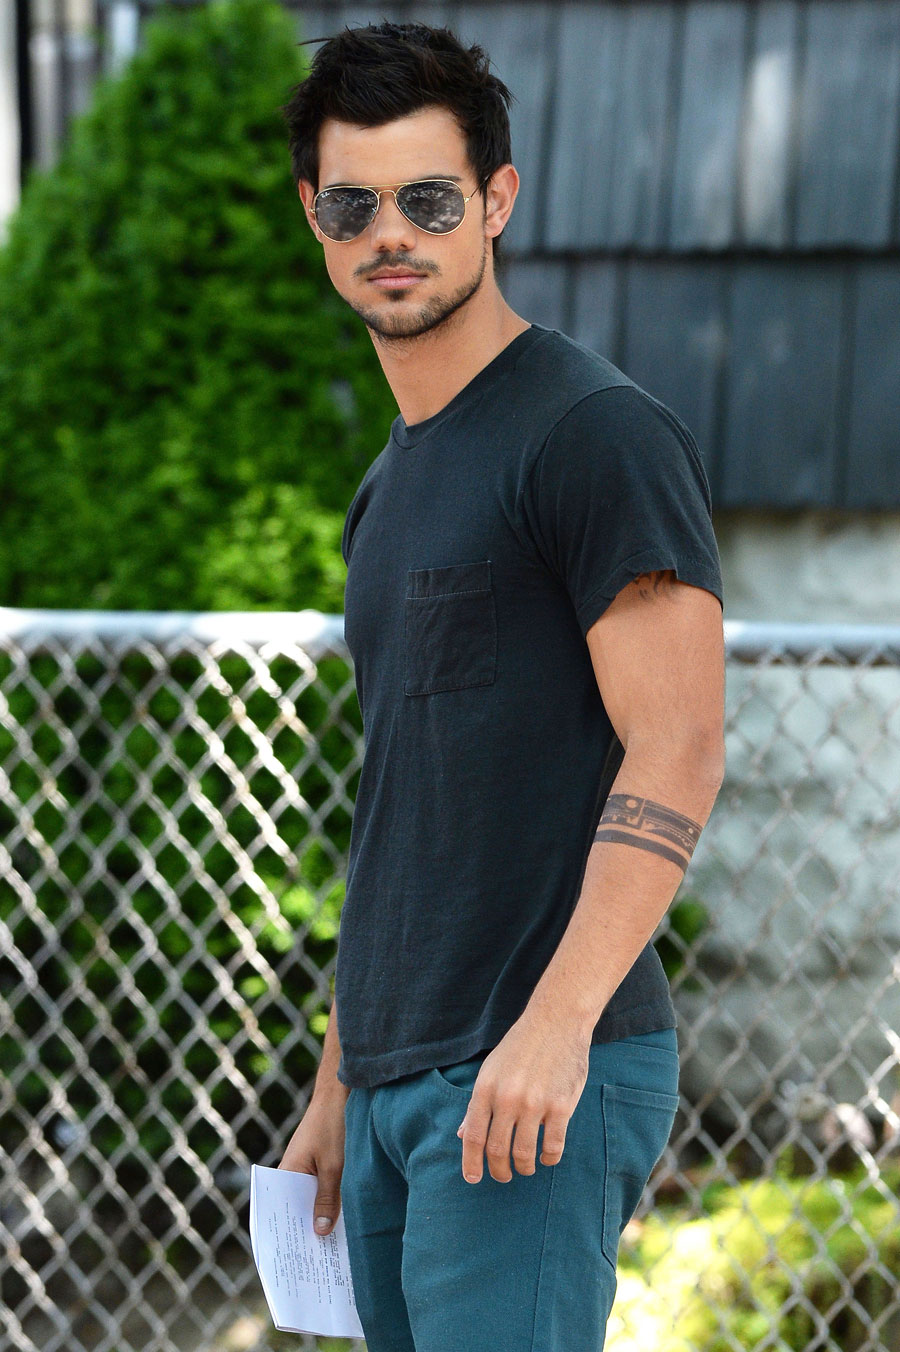 Taylor Lautner HD wallpapers • PoPoPics.com